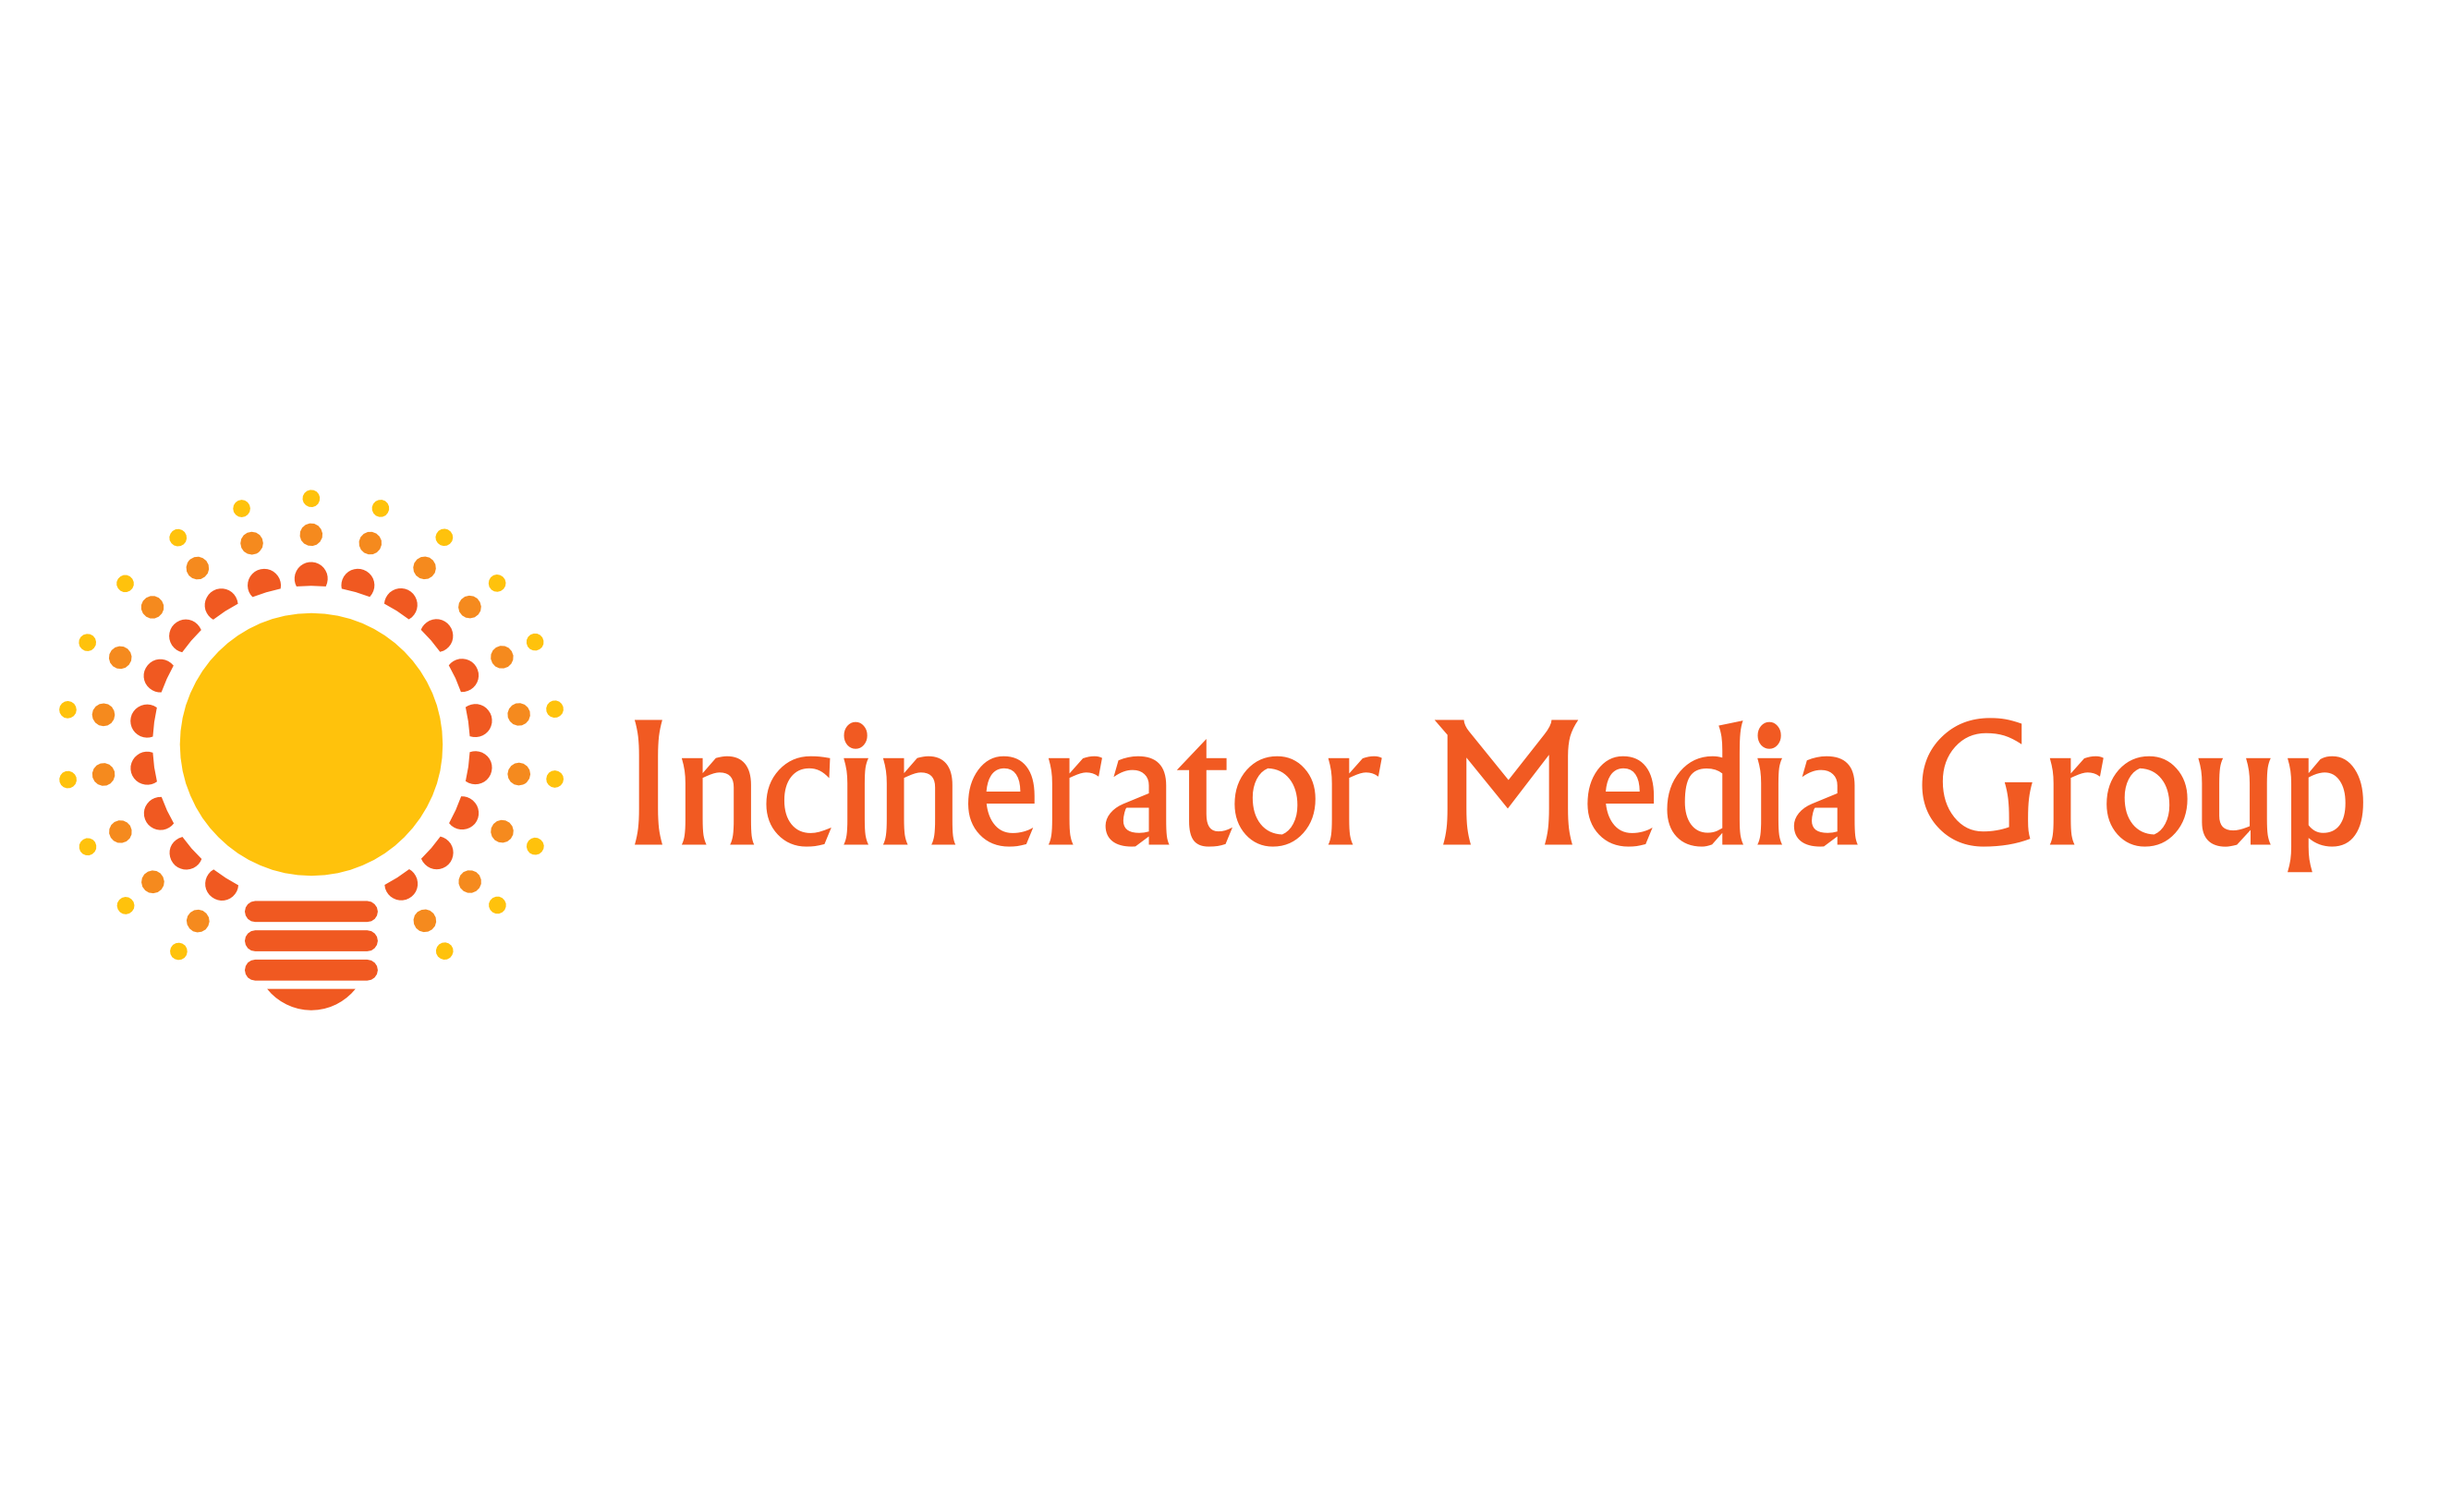 incinerator media group